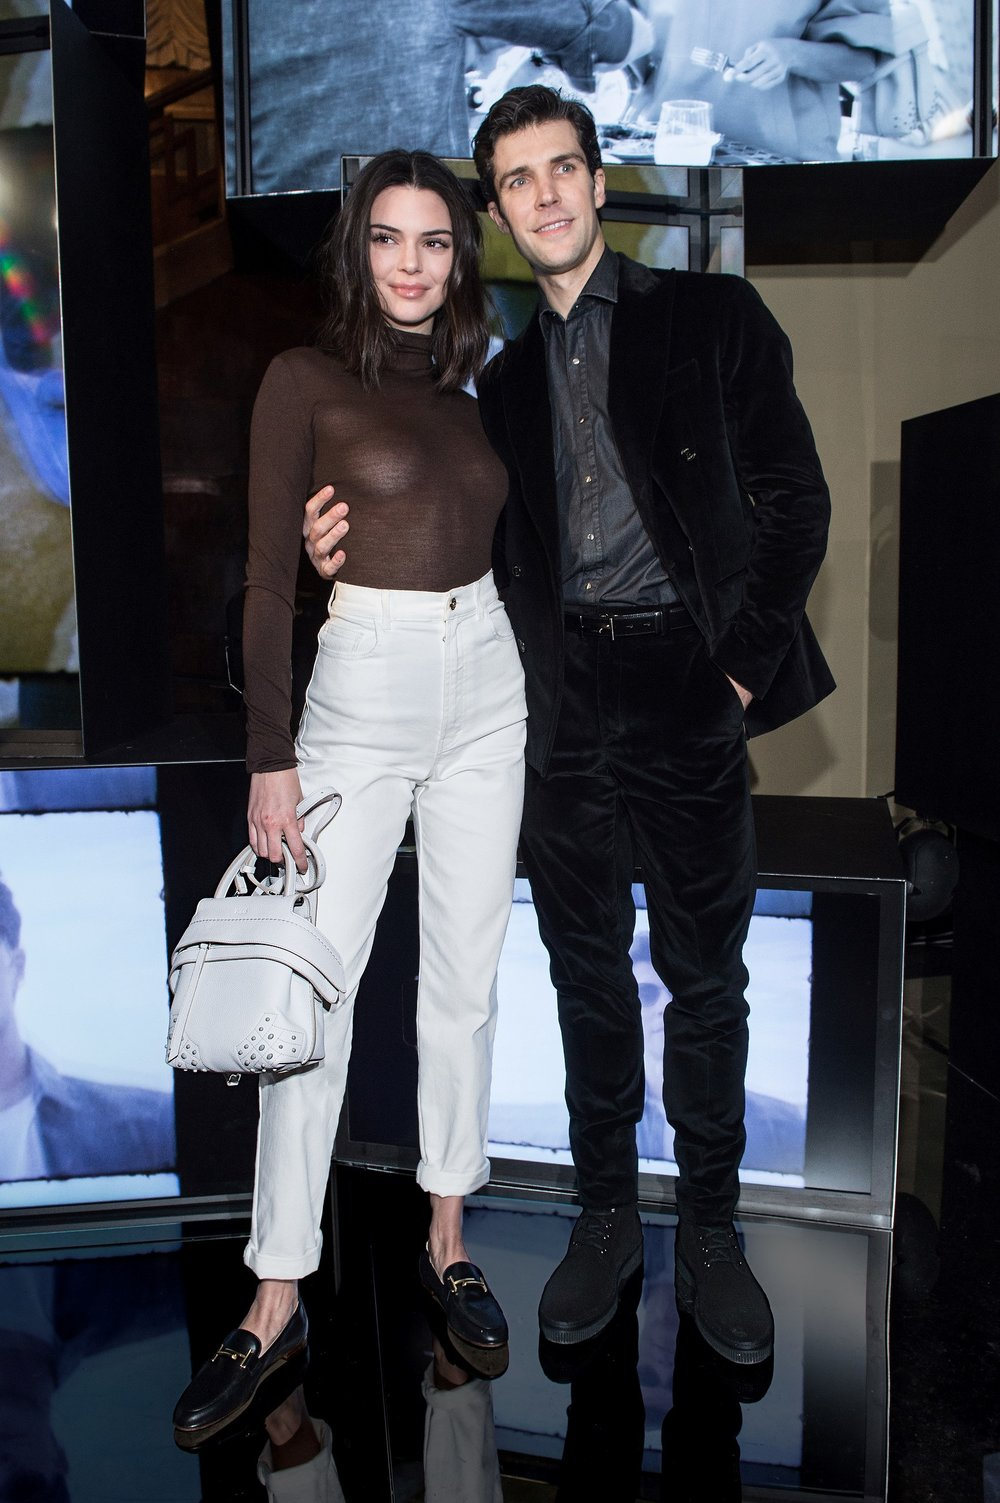 Models Kendall Jenner and Roberto Bolle | all images c/o Tod's